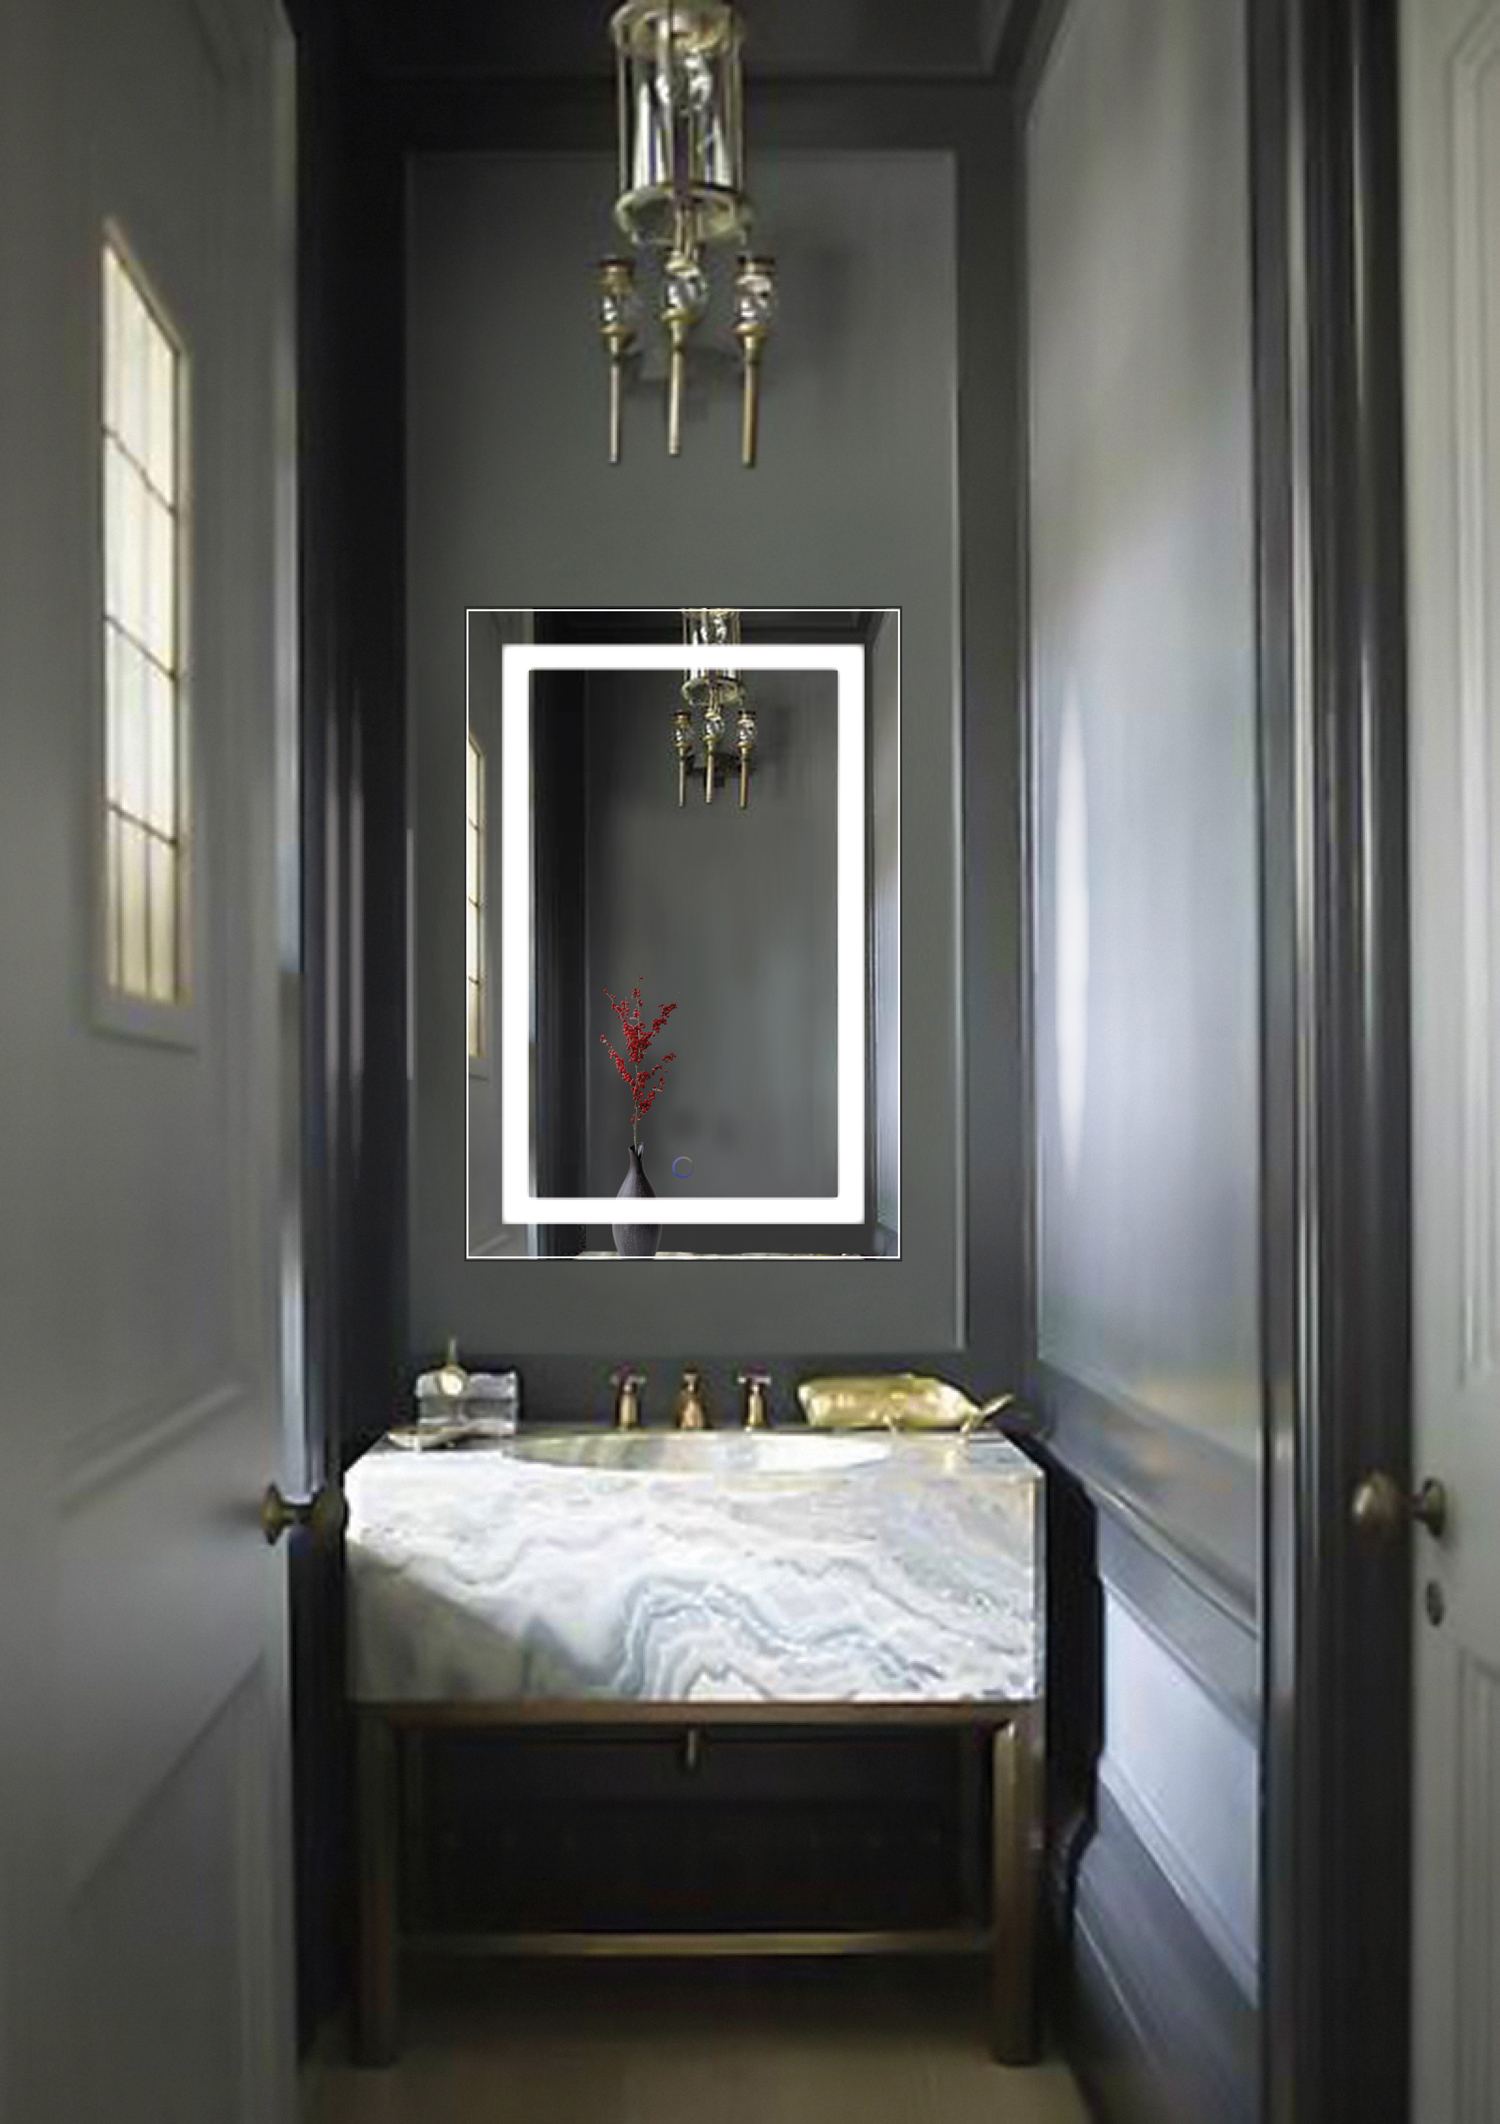 24 X36 Bathroom Mirror With Dimmer Defogger Large Img Small